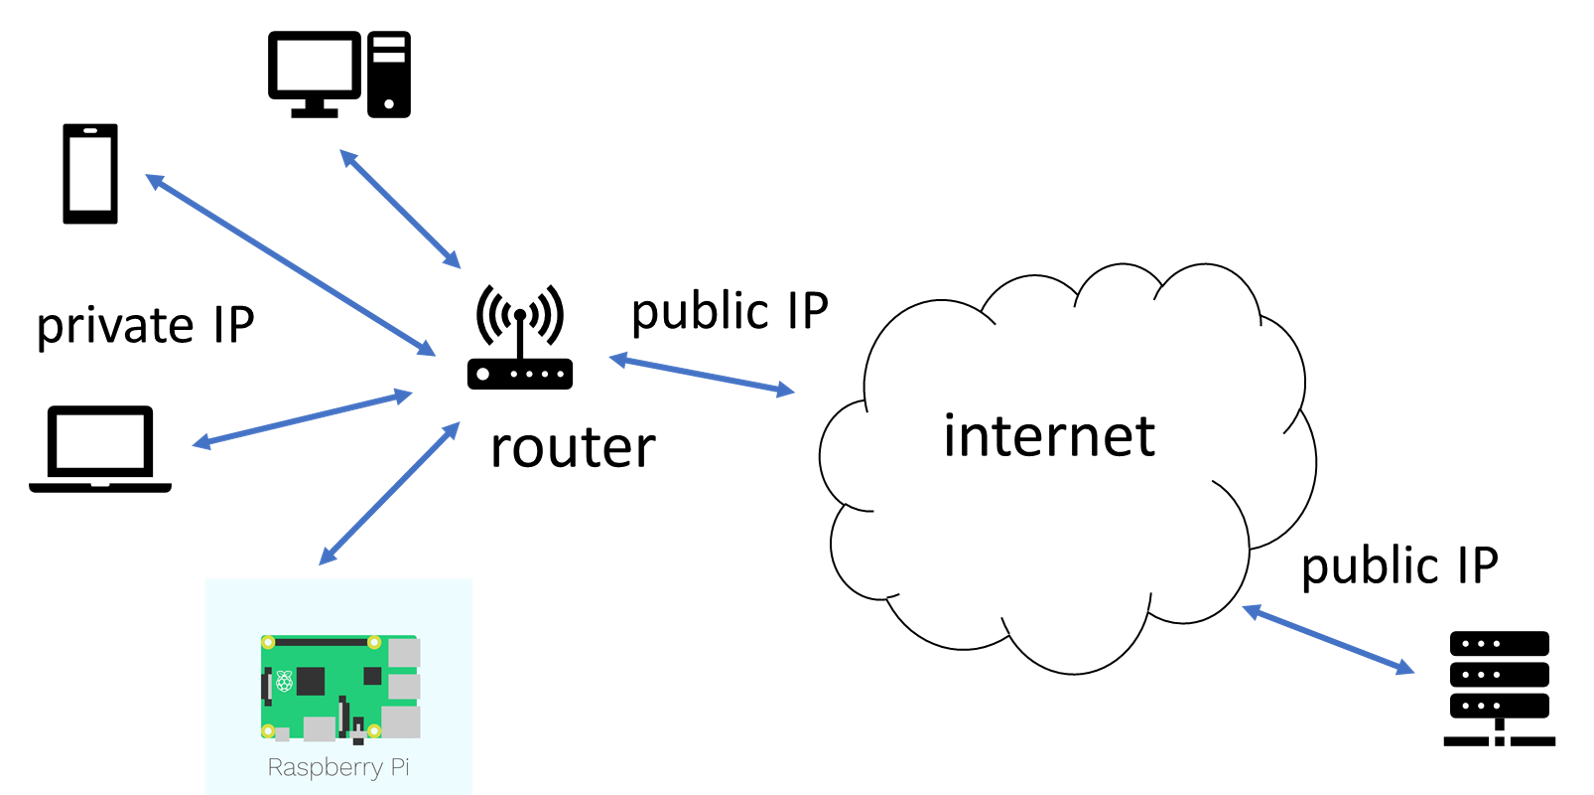 The diagram shows a wireless router and a number of devices connected to a service on the internet